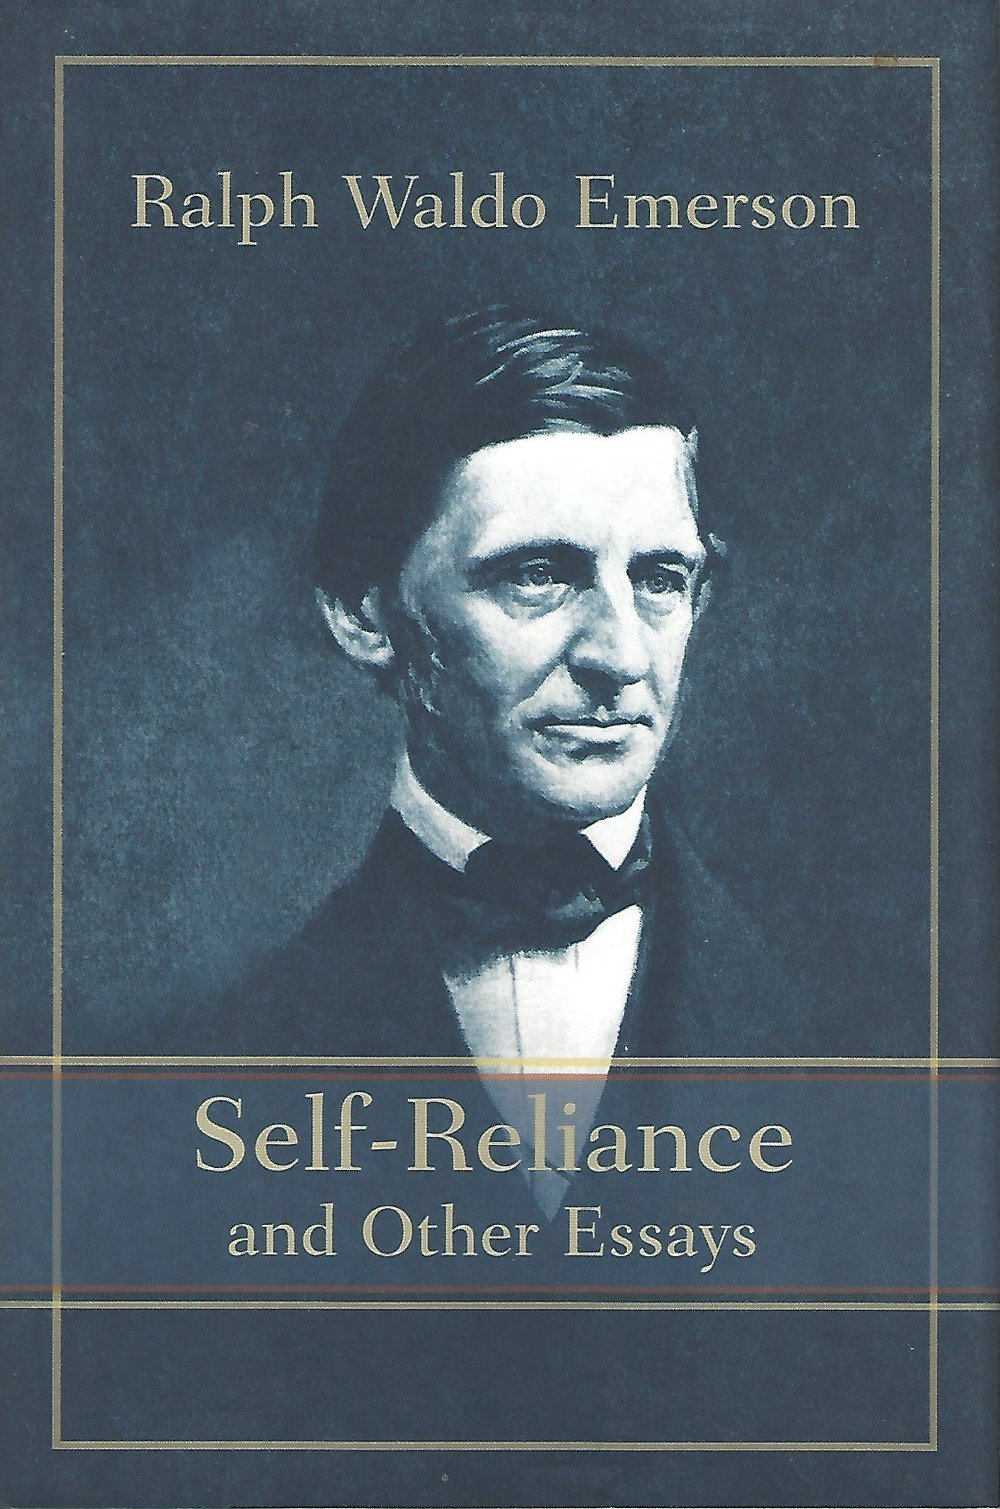 self-reliance book cover.jpg